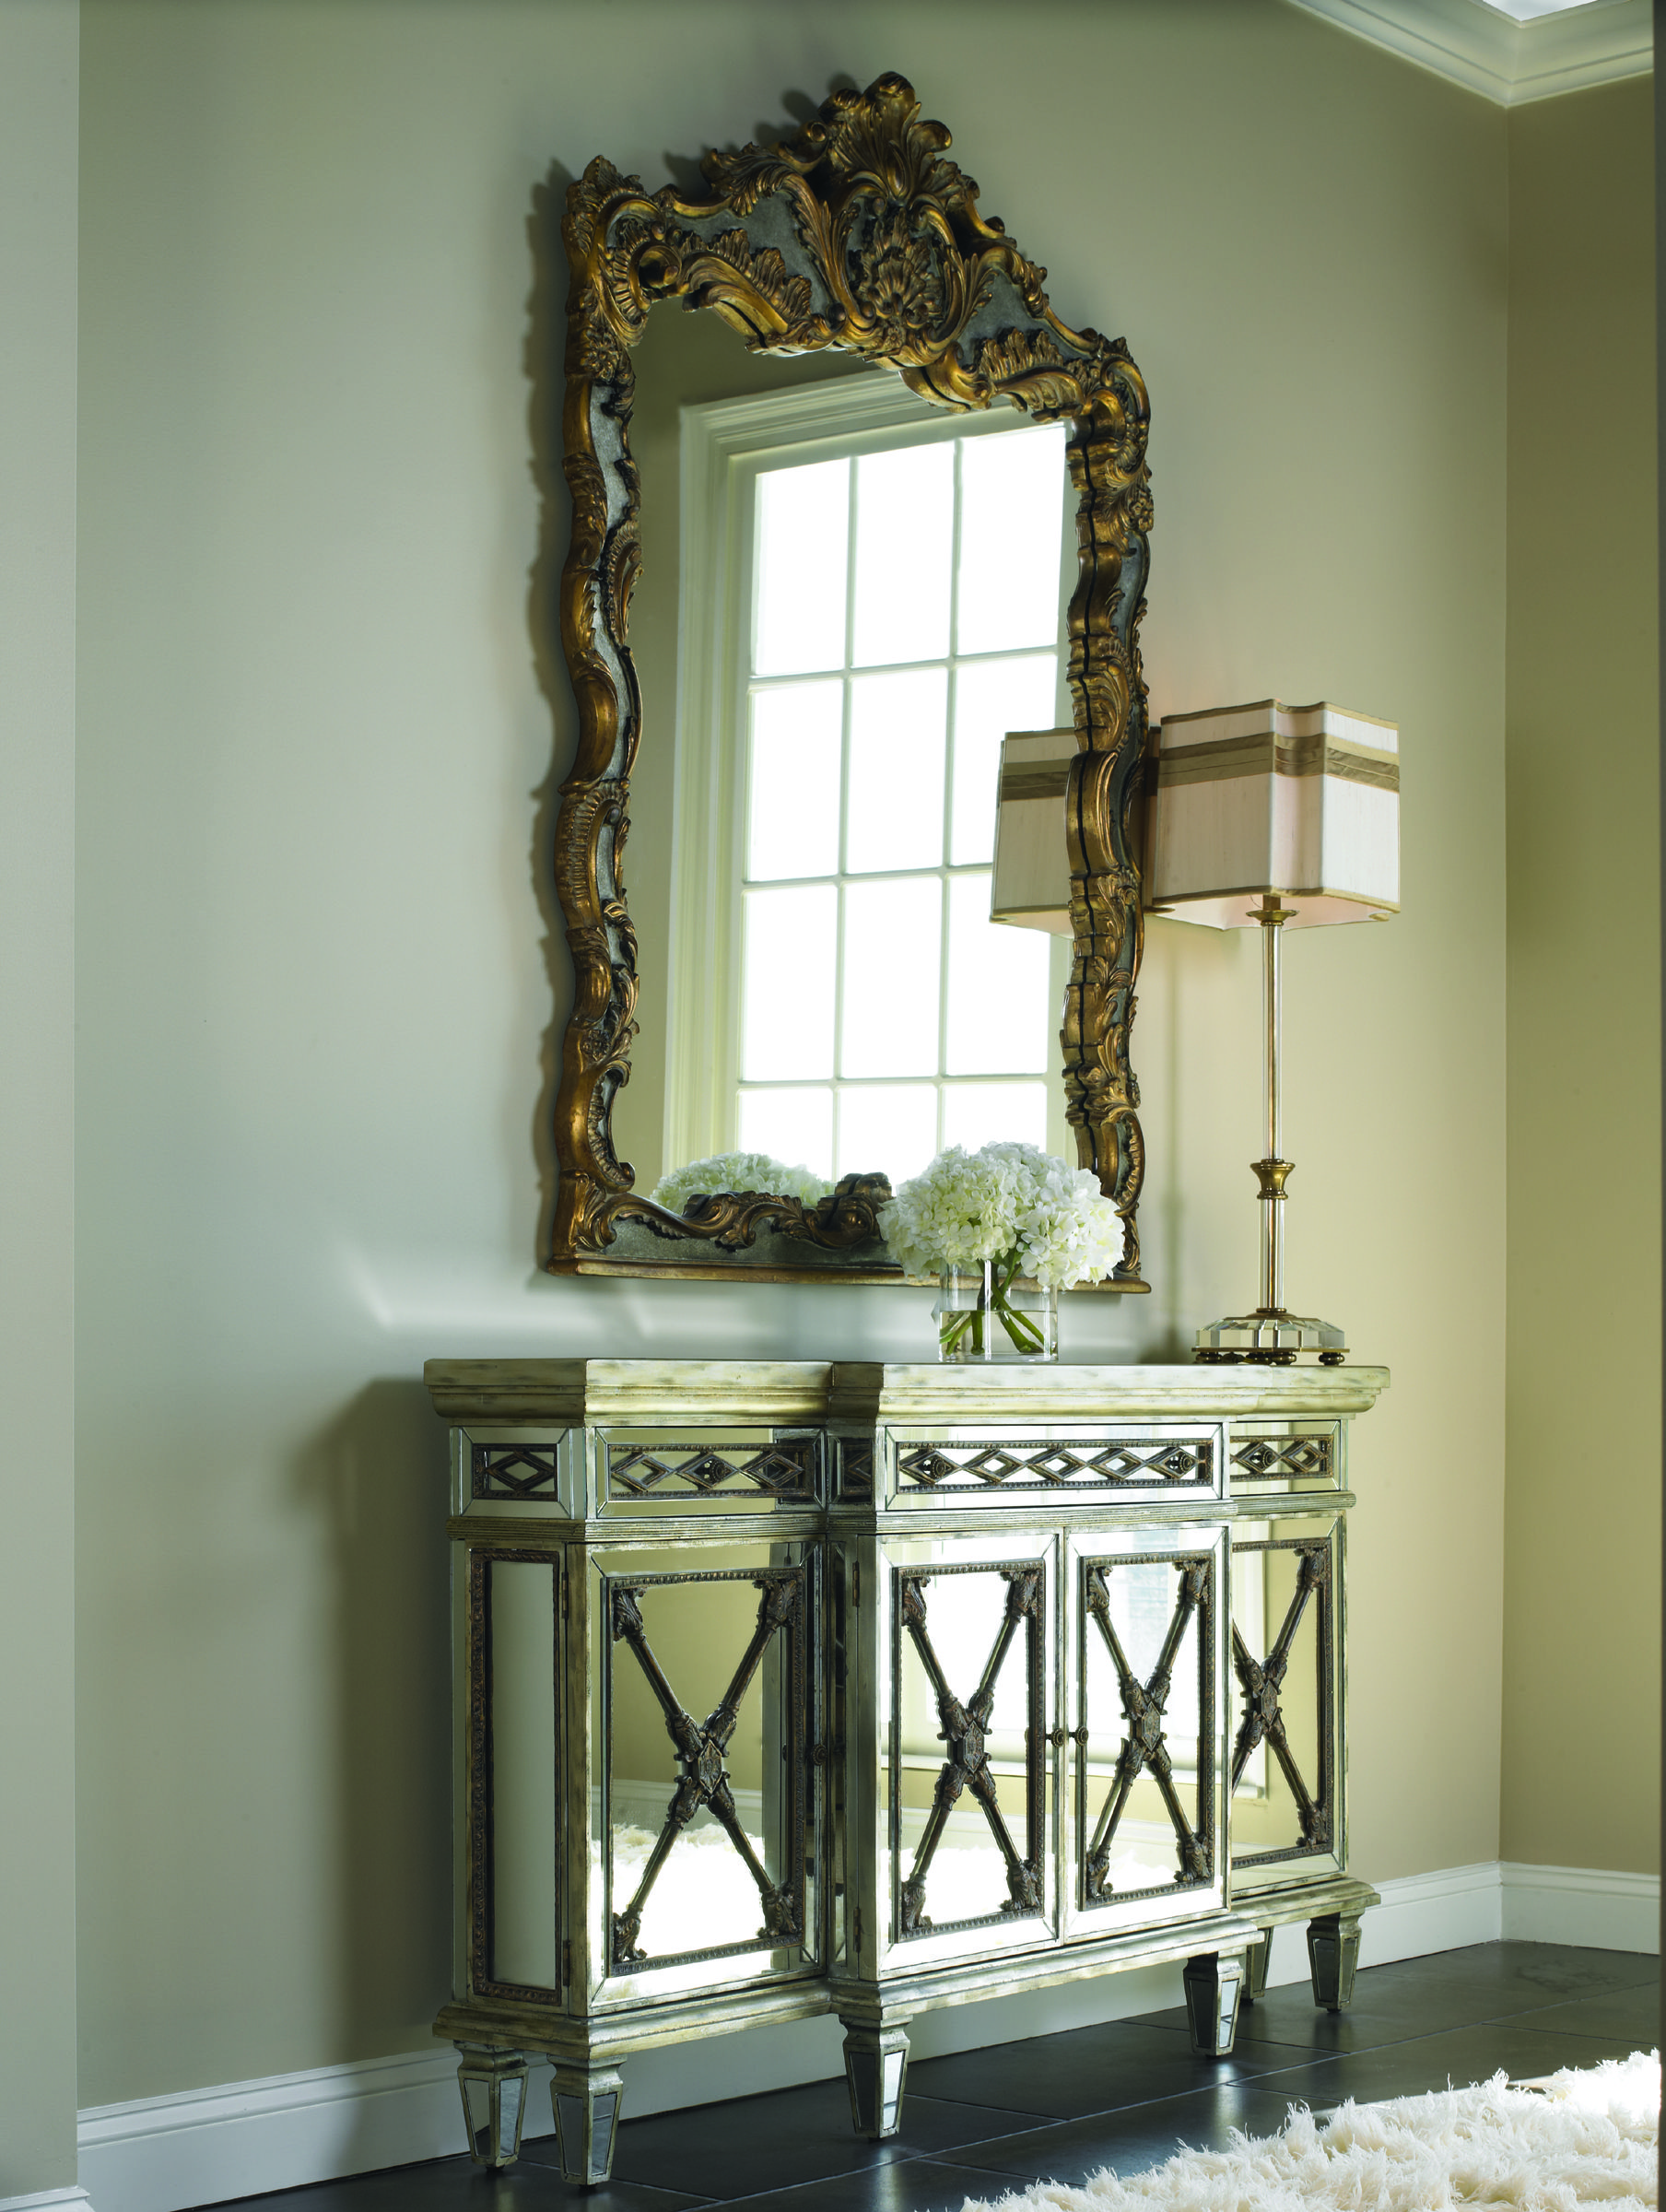 Marvelous La Barge LT6966 Mirrored Console And EM1071 Overscaled Baroque Crowned Top  Mirror   Classic Elegance.